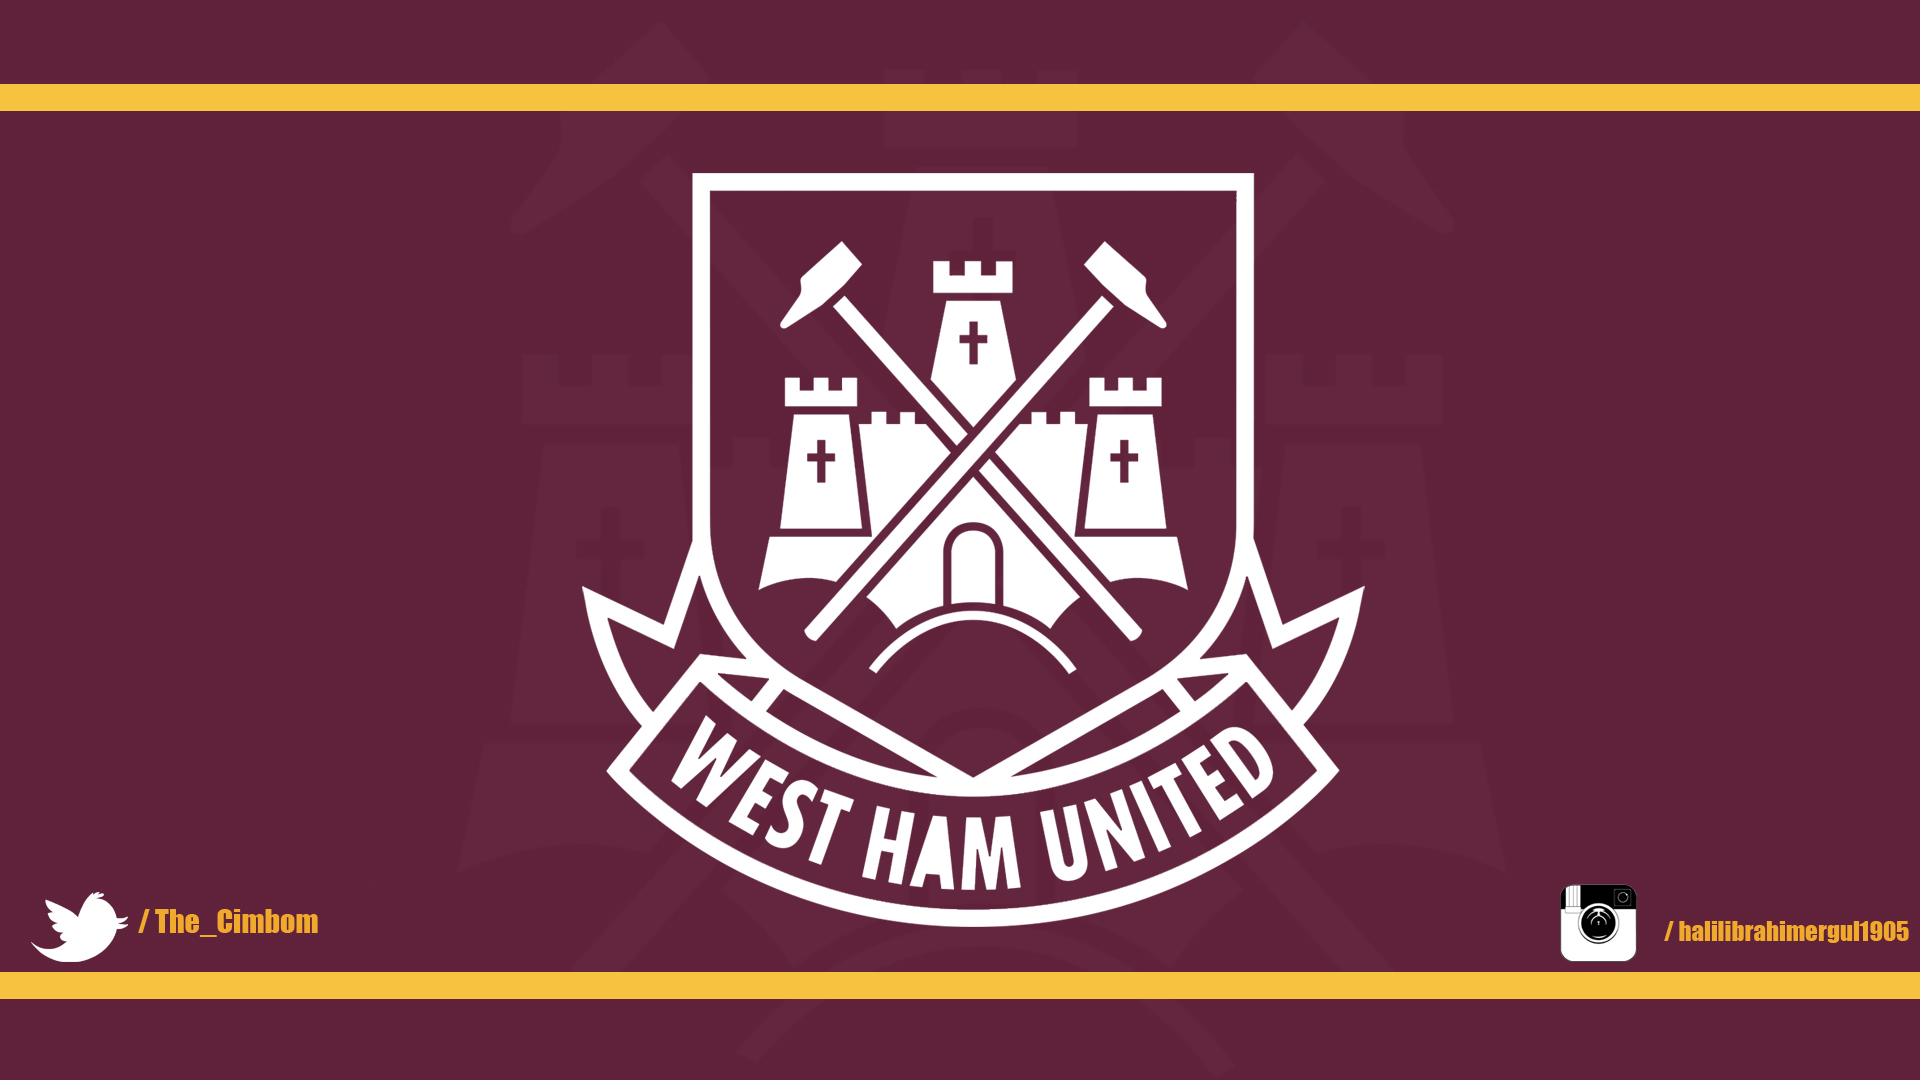 HD West Ham United Wallpapers | Full HD Pictures